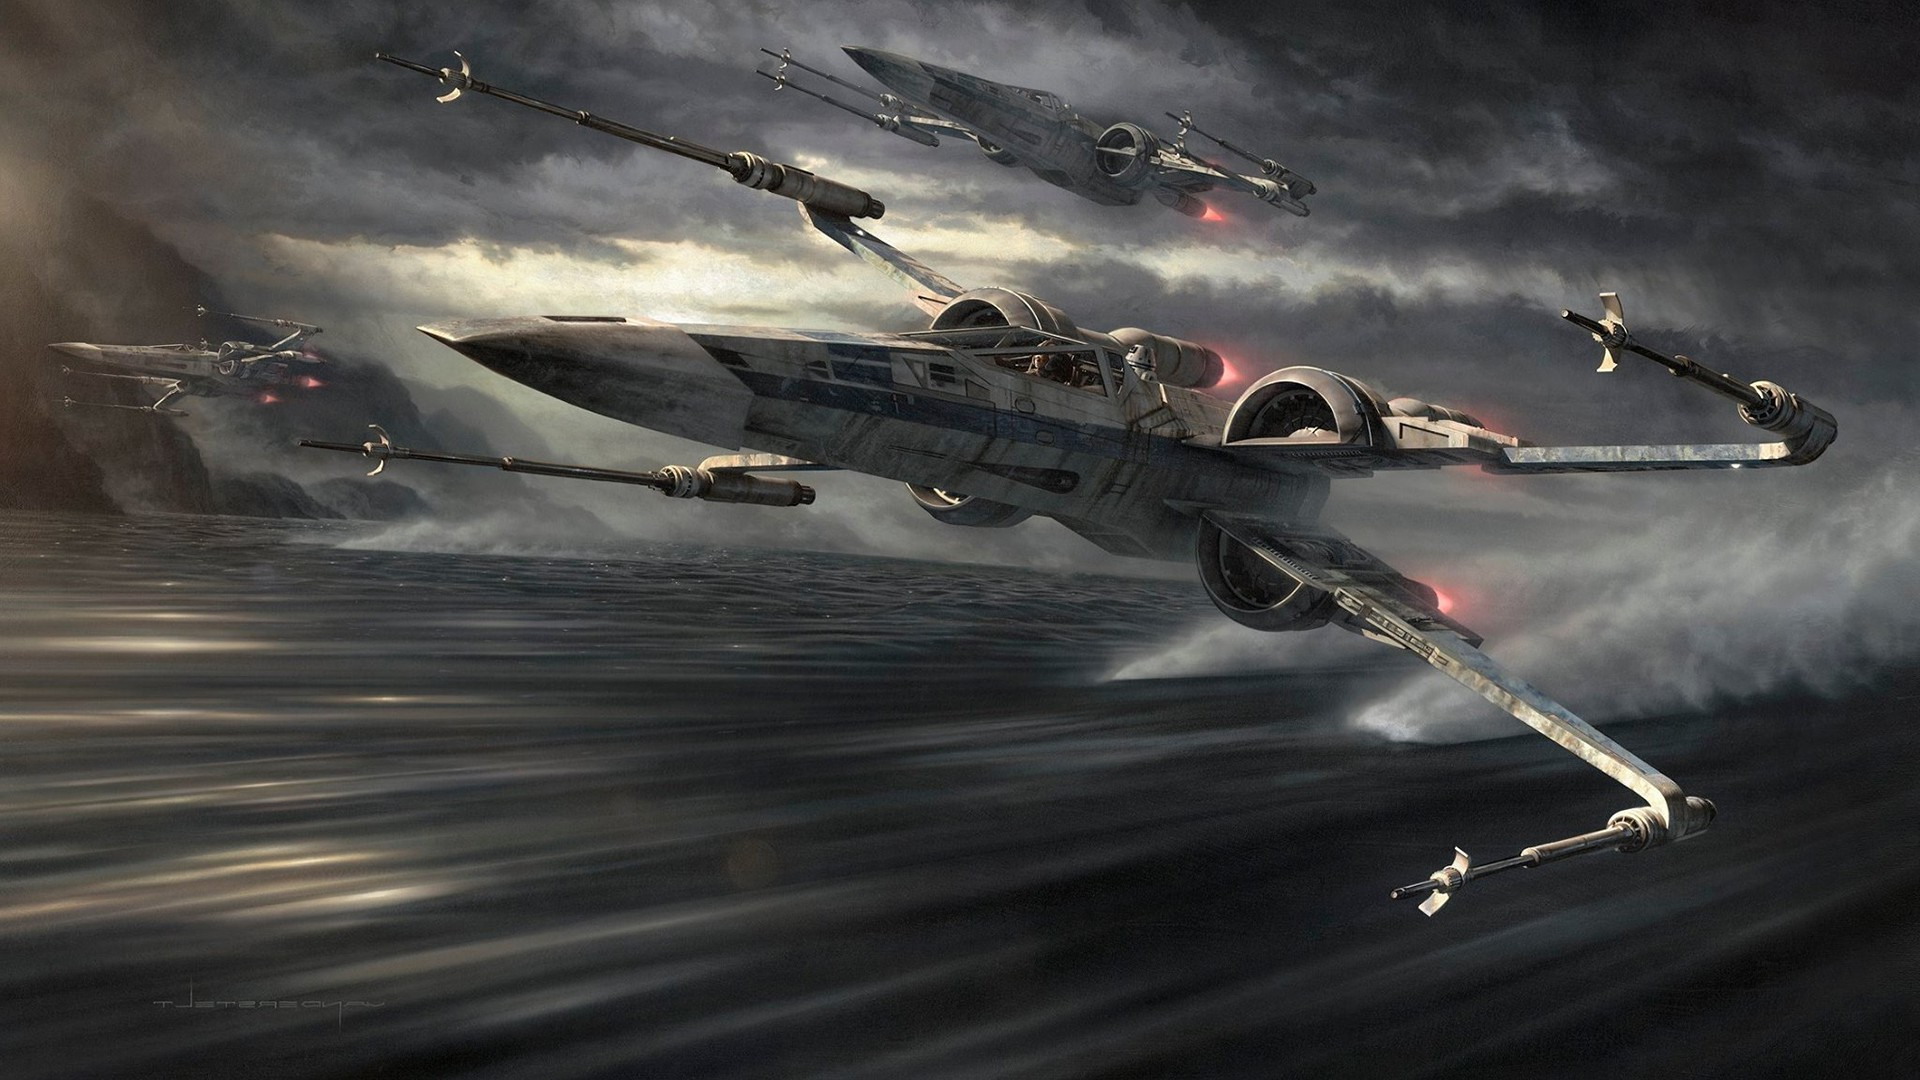 1920x1080 Download hd wallpapers of 301401-X-wing, Star Wars. Free download High